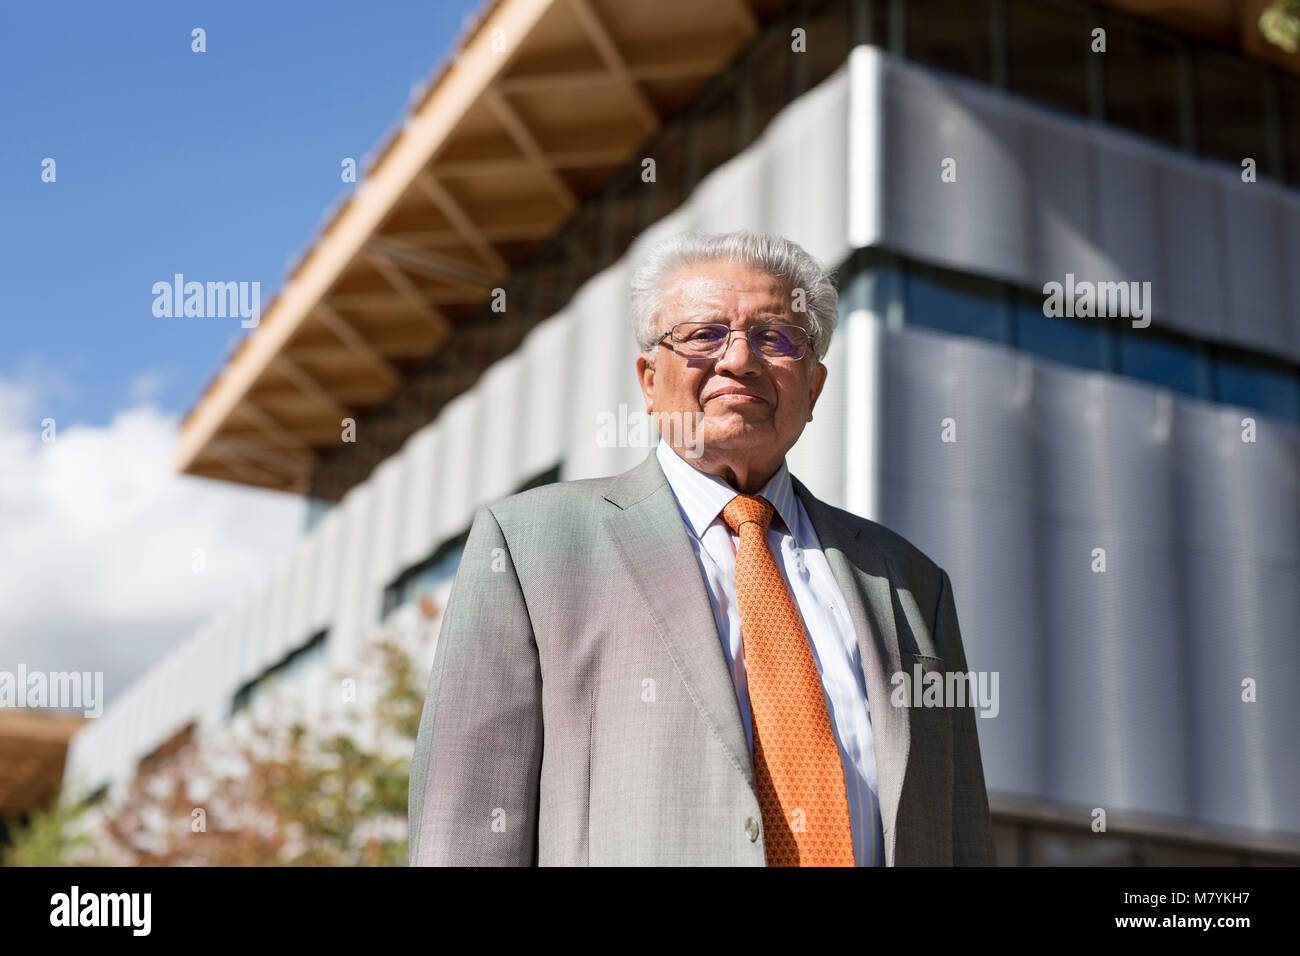 Lord Kumar Bhattacharyya in the International Manufacturing Centre at the University of Warwick. - Stock Image